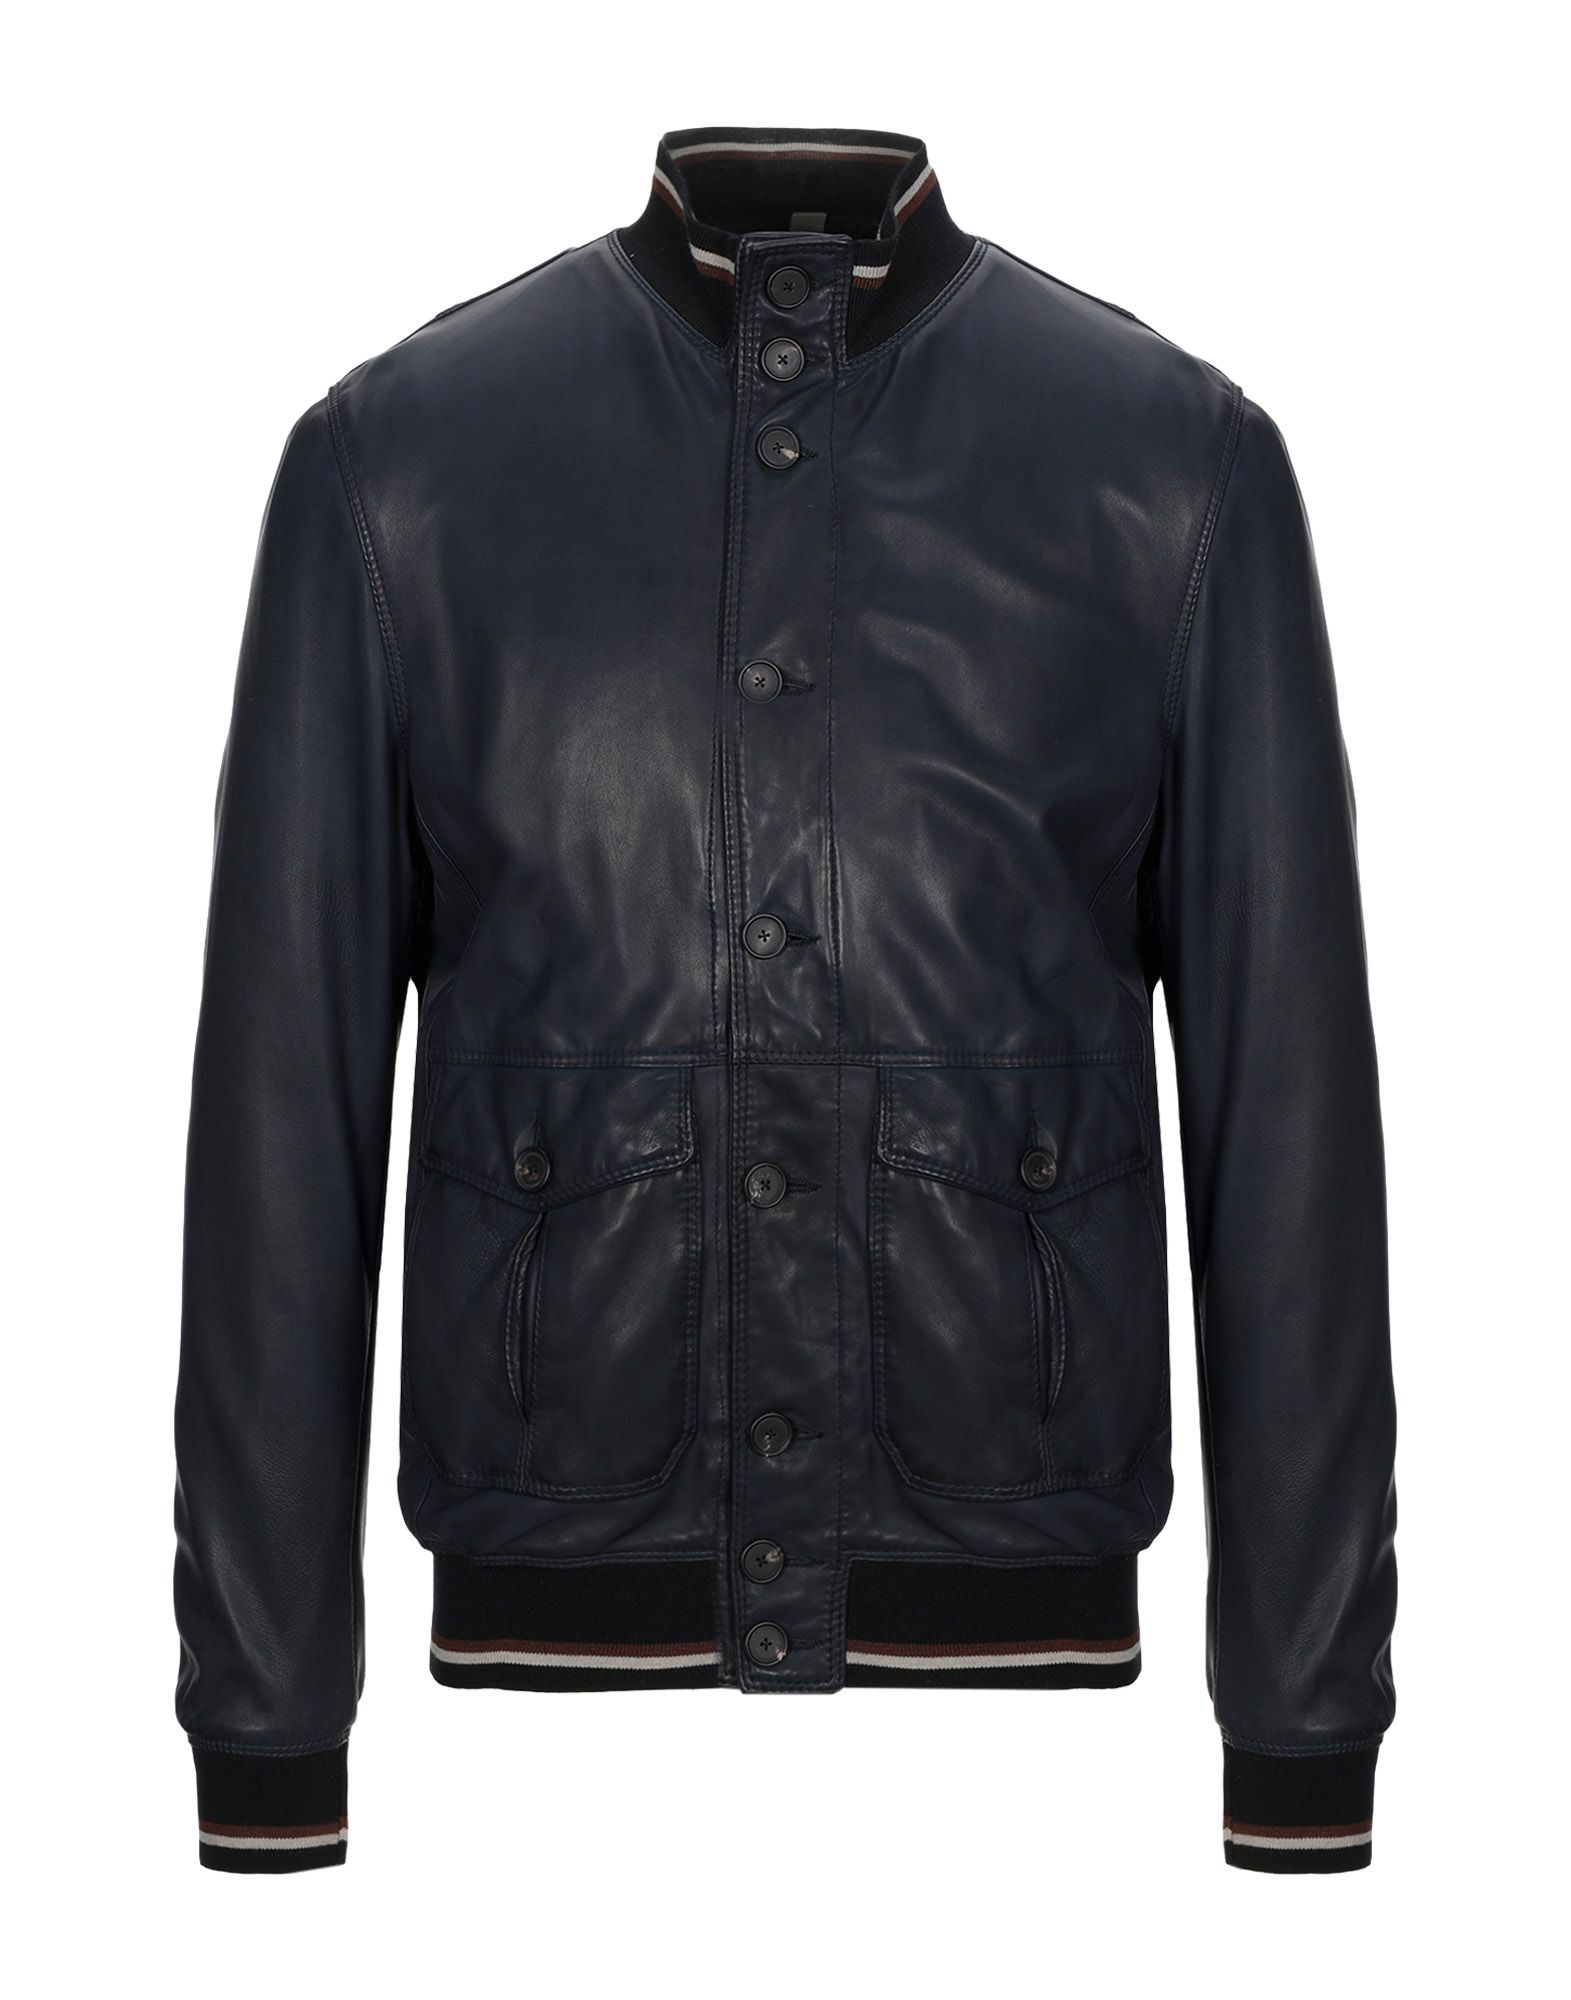 TAGLIATORE Jackets. leather, no appliqués, solid color, single-breasted, button closing, round collar, multipockets, one inside pocket, long sleeves, knitted cuffs, fully lined, contains non-textile parts of animal origin. Soft Leather